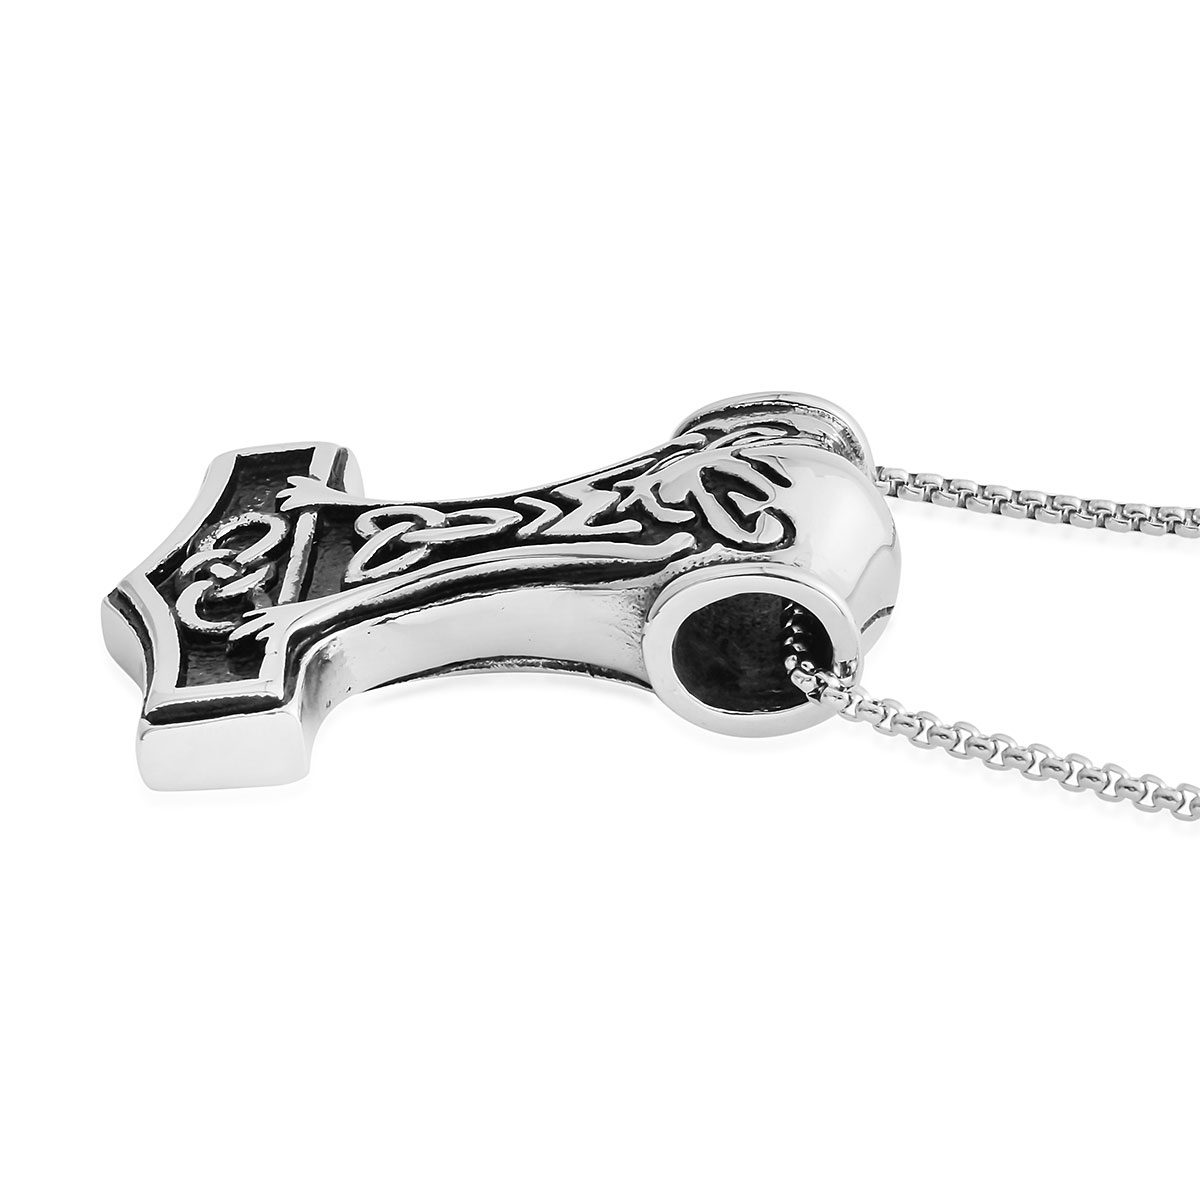 Black Oxidized Stainless Steel Hammer Pendant With Chain (24 in)